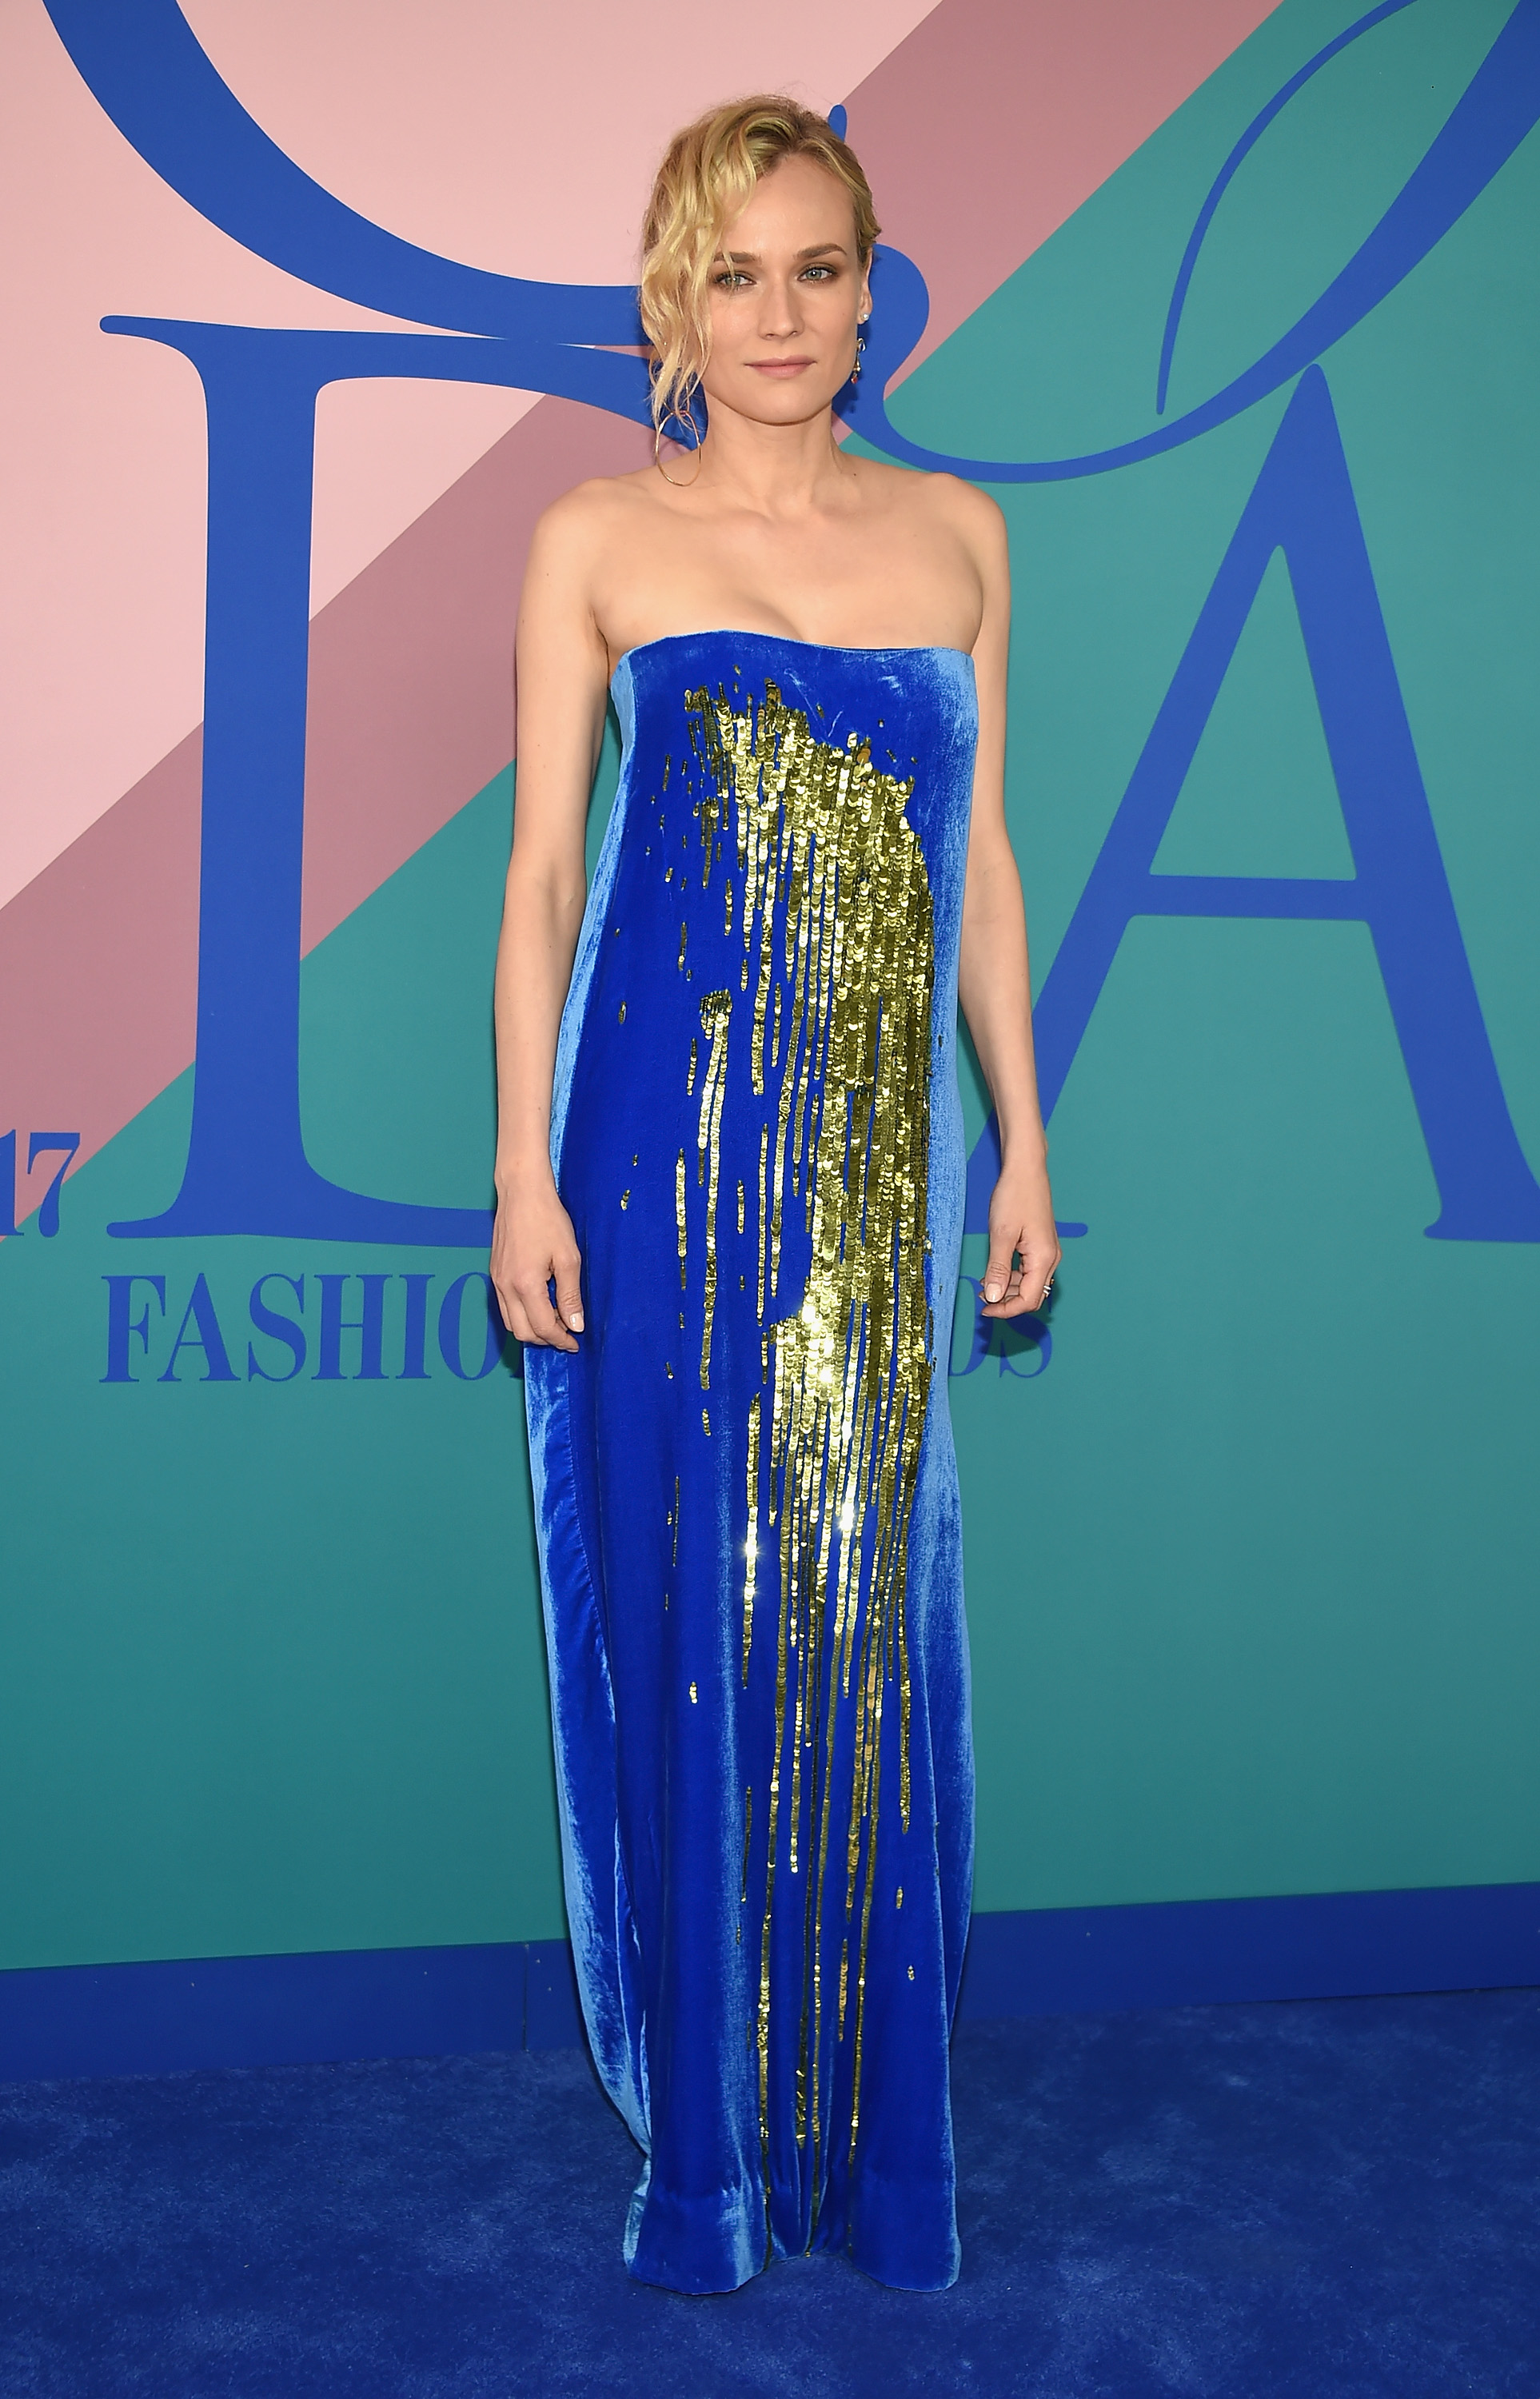 NEW YORK, NY - JUNE 05:  Actress Diane Kruger attends the 2017 CFDA Fashion Awards at Hammerstein Ballroom on June 5, 2017 in New York City.  (Photo by Dimitrios Kambouris/Getty Images)